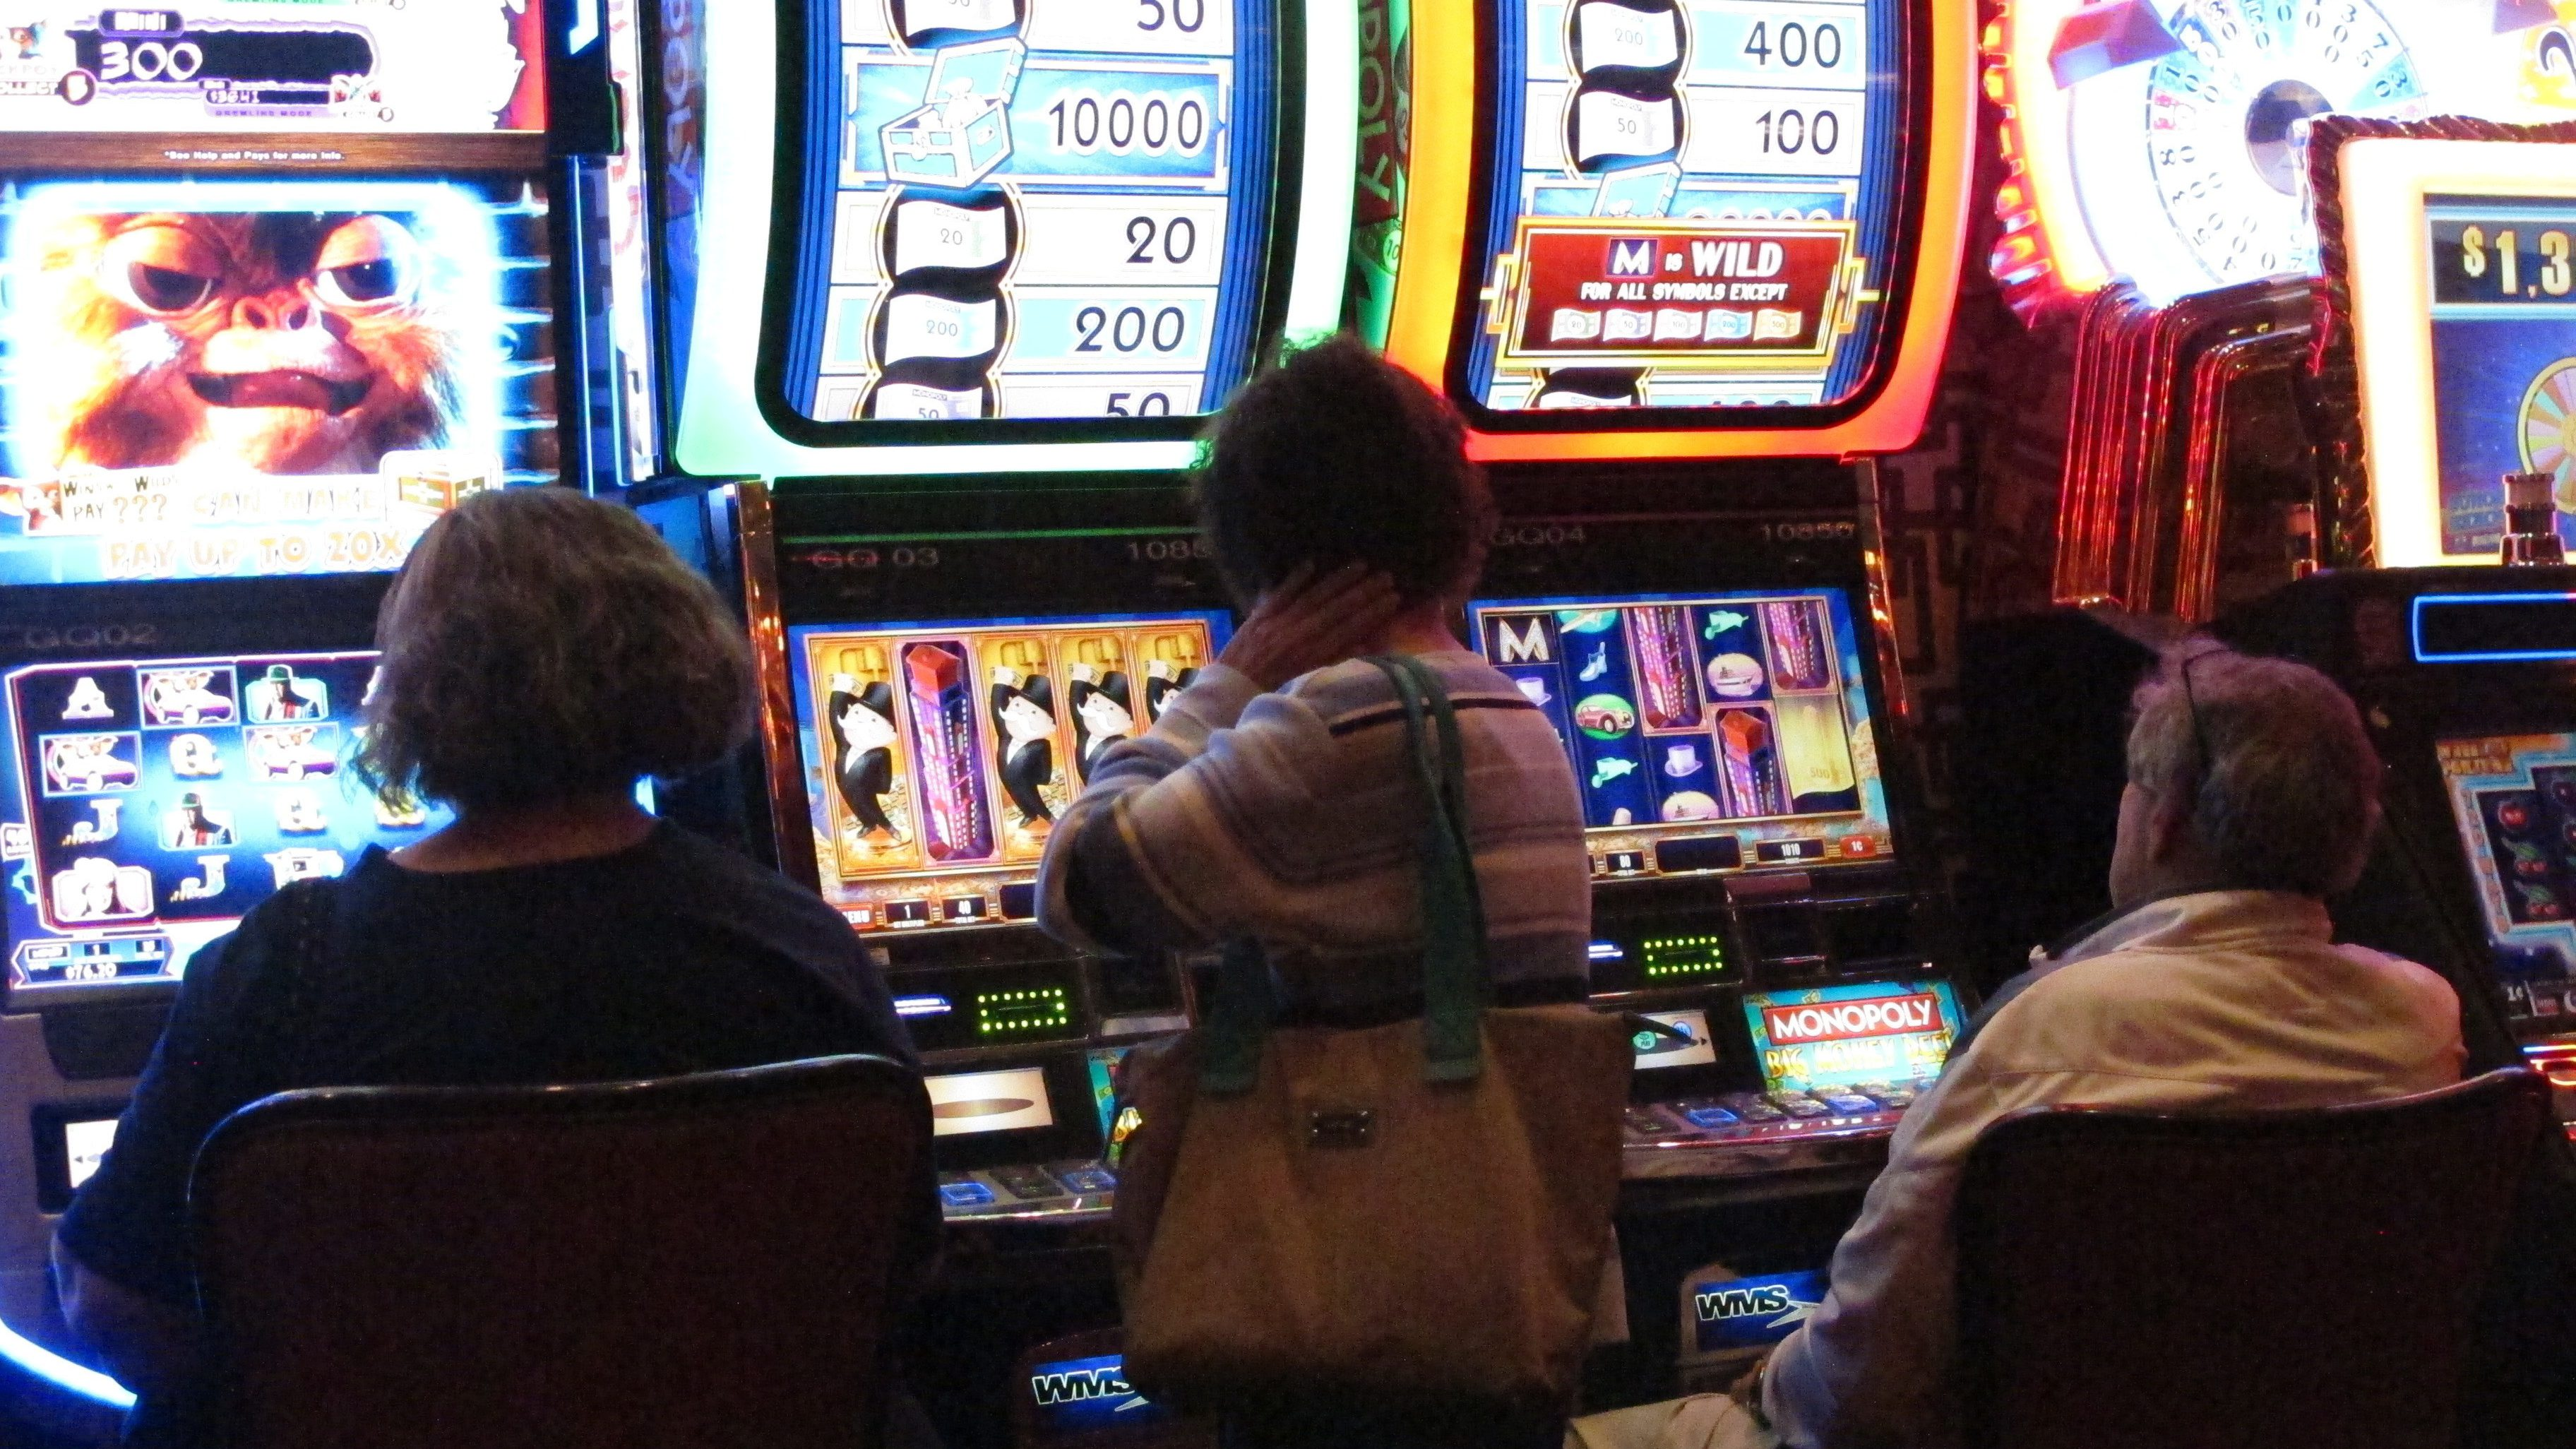 This June 24, 2016 photo shows a gamblers playing slot machines at the Golden Nugget casino in Atlantic City N.J. Figures released on Friday, May 12, 2017 show that the Golden Nugget had the highest gambling revenue increase in April of Atlantic City's seven casinos, up more than 17 percent from a year ago. (AP Photo/Wayne Parry)